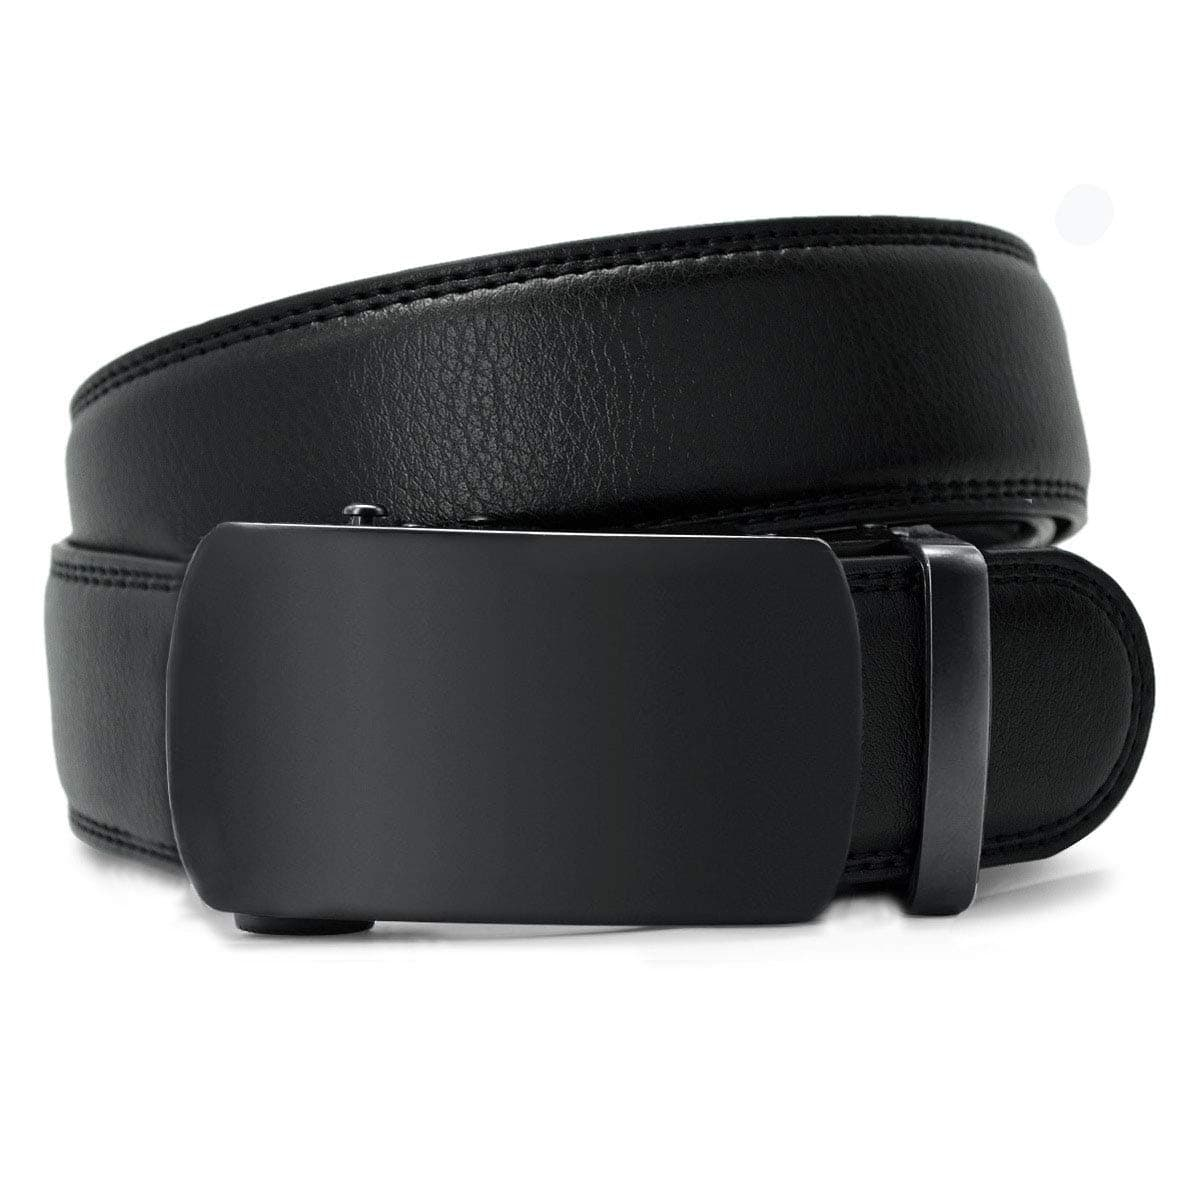 West Leathers Men's Slide Ratchet Belt for $8.99 AC + FSSS